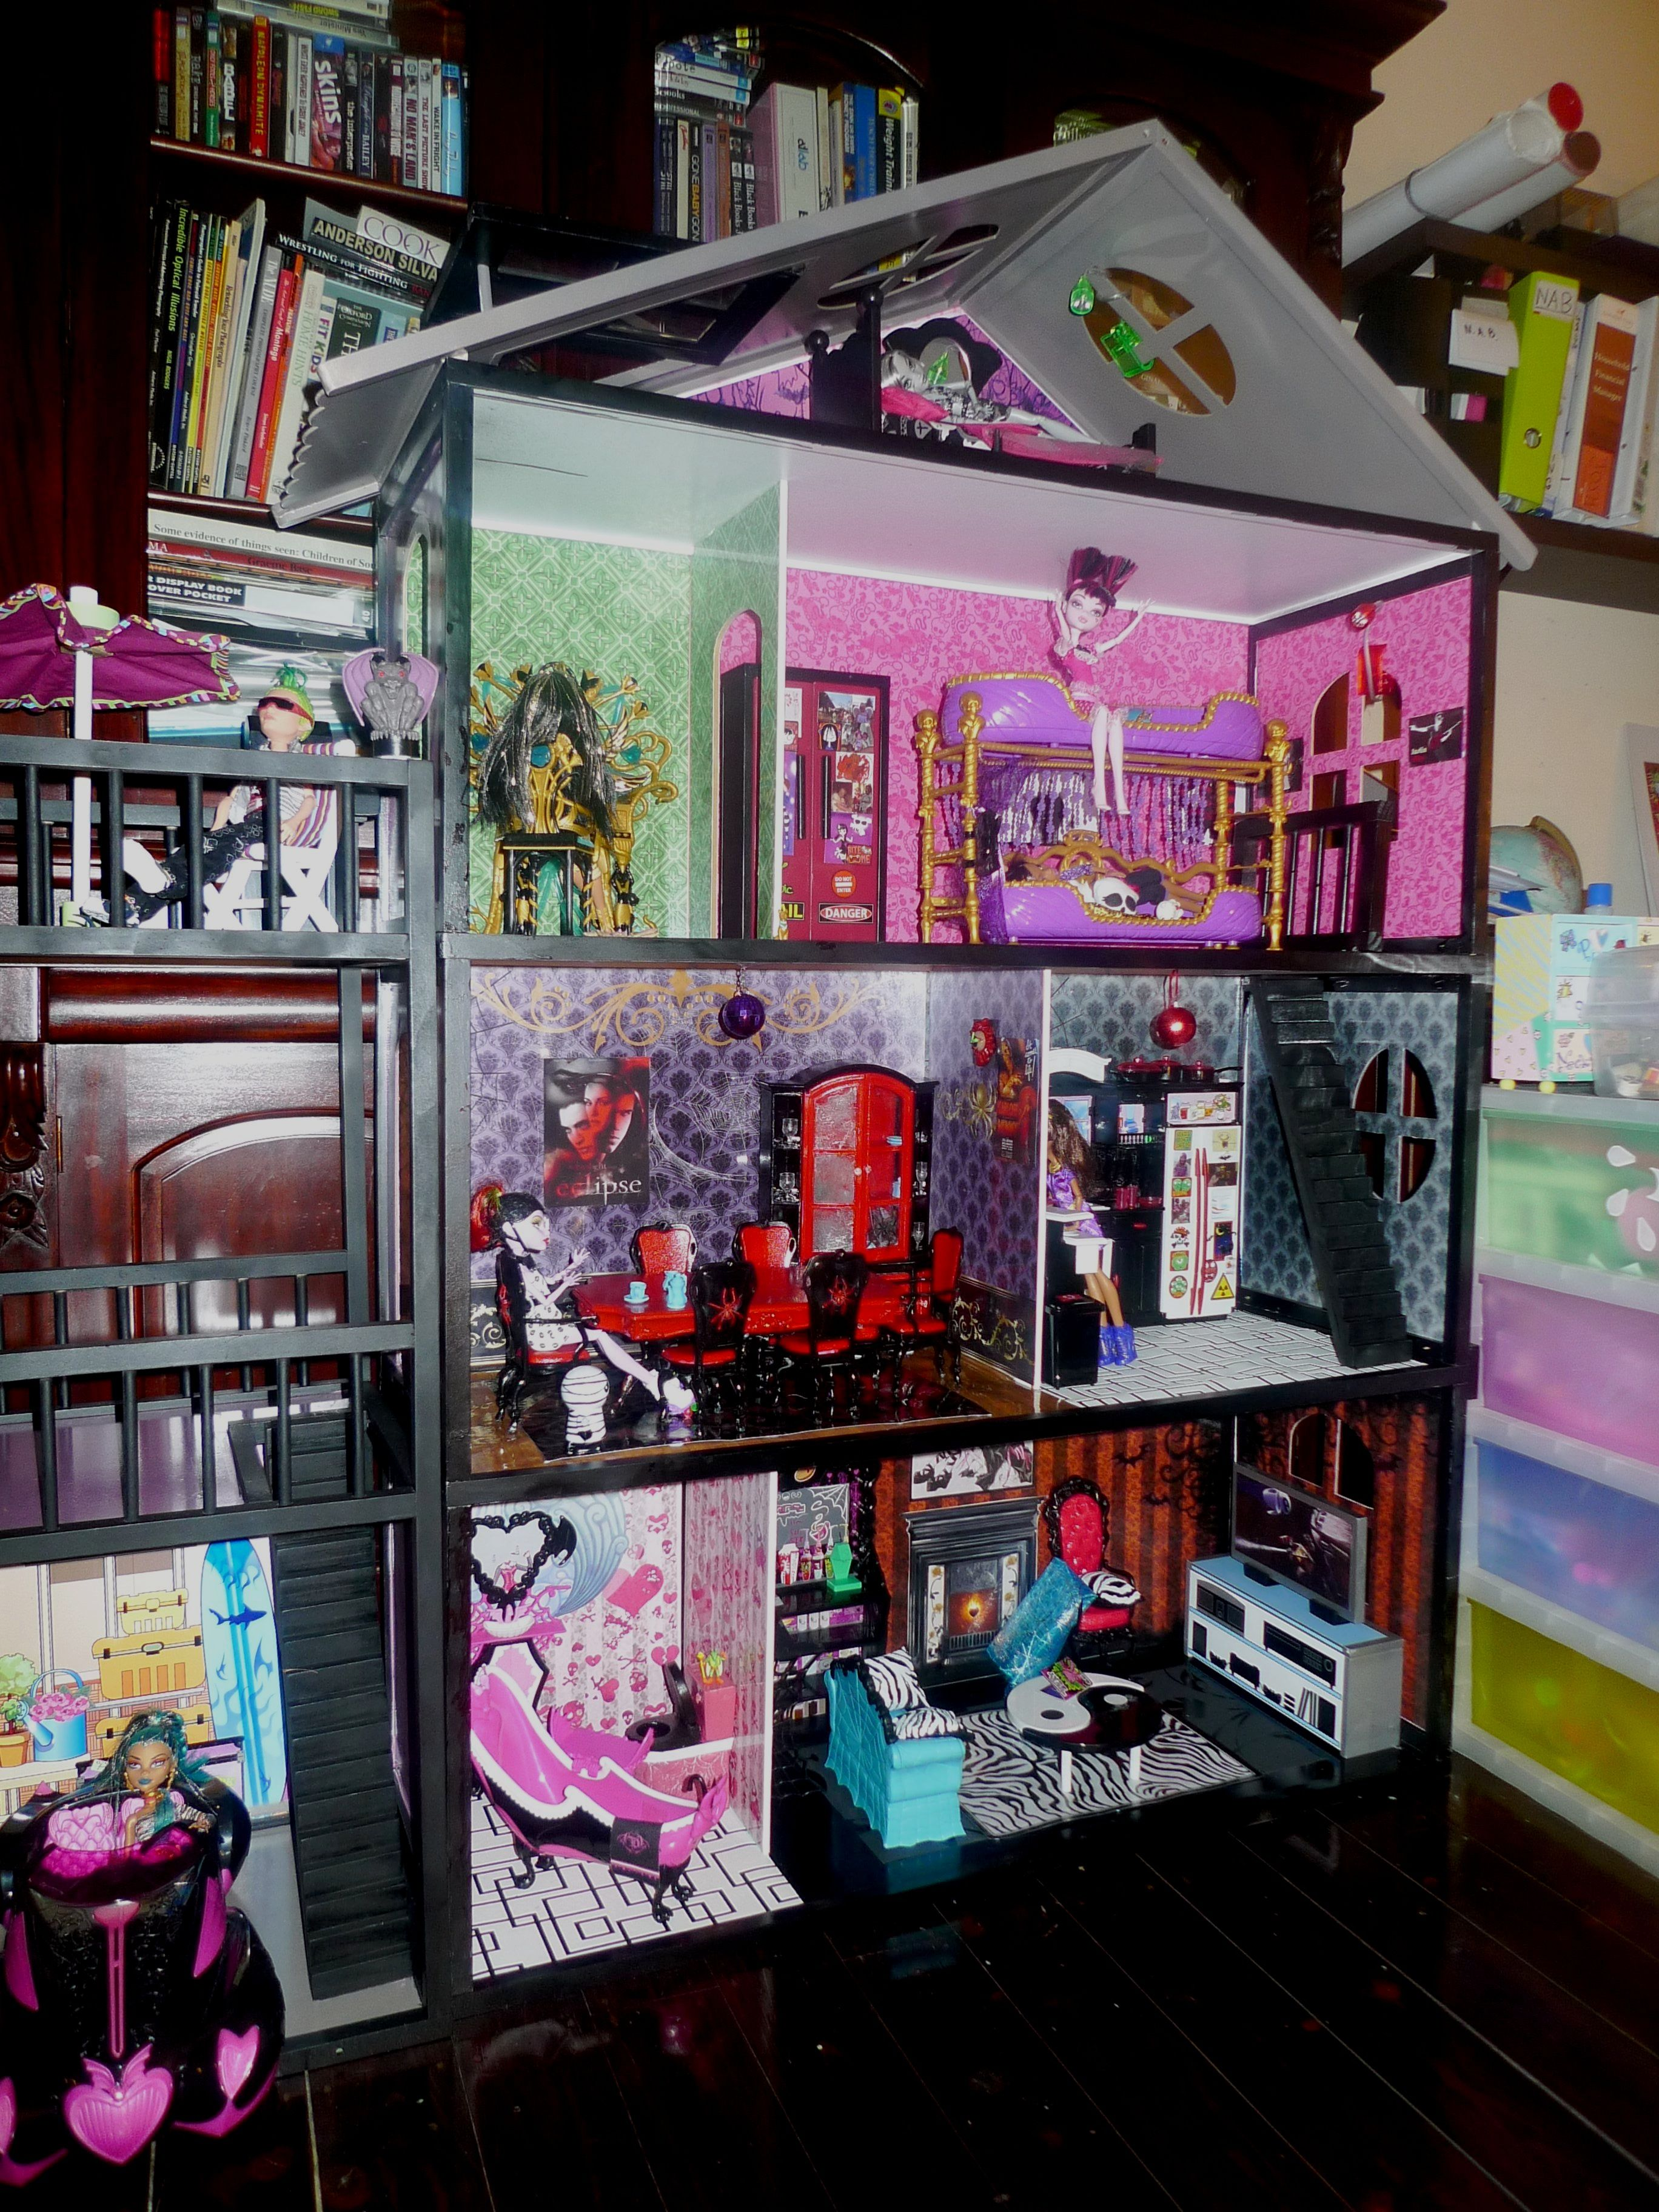 Where Do I Find An Old Doll House Or Shelving Unit To Make This